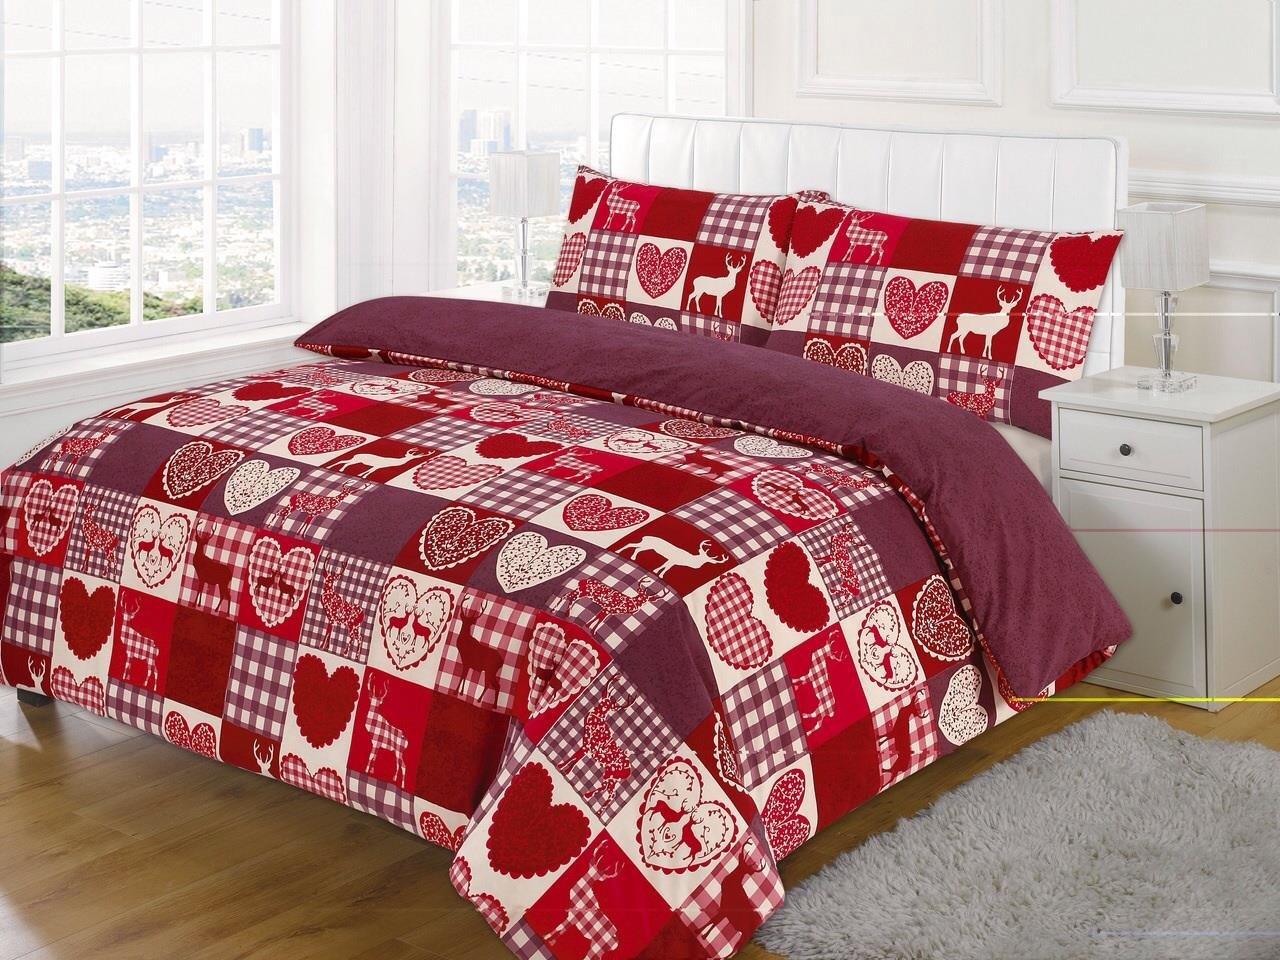 double bed new christmas patchwork duvet quilt cover bedding set amazoncouk kitchen u0026 home